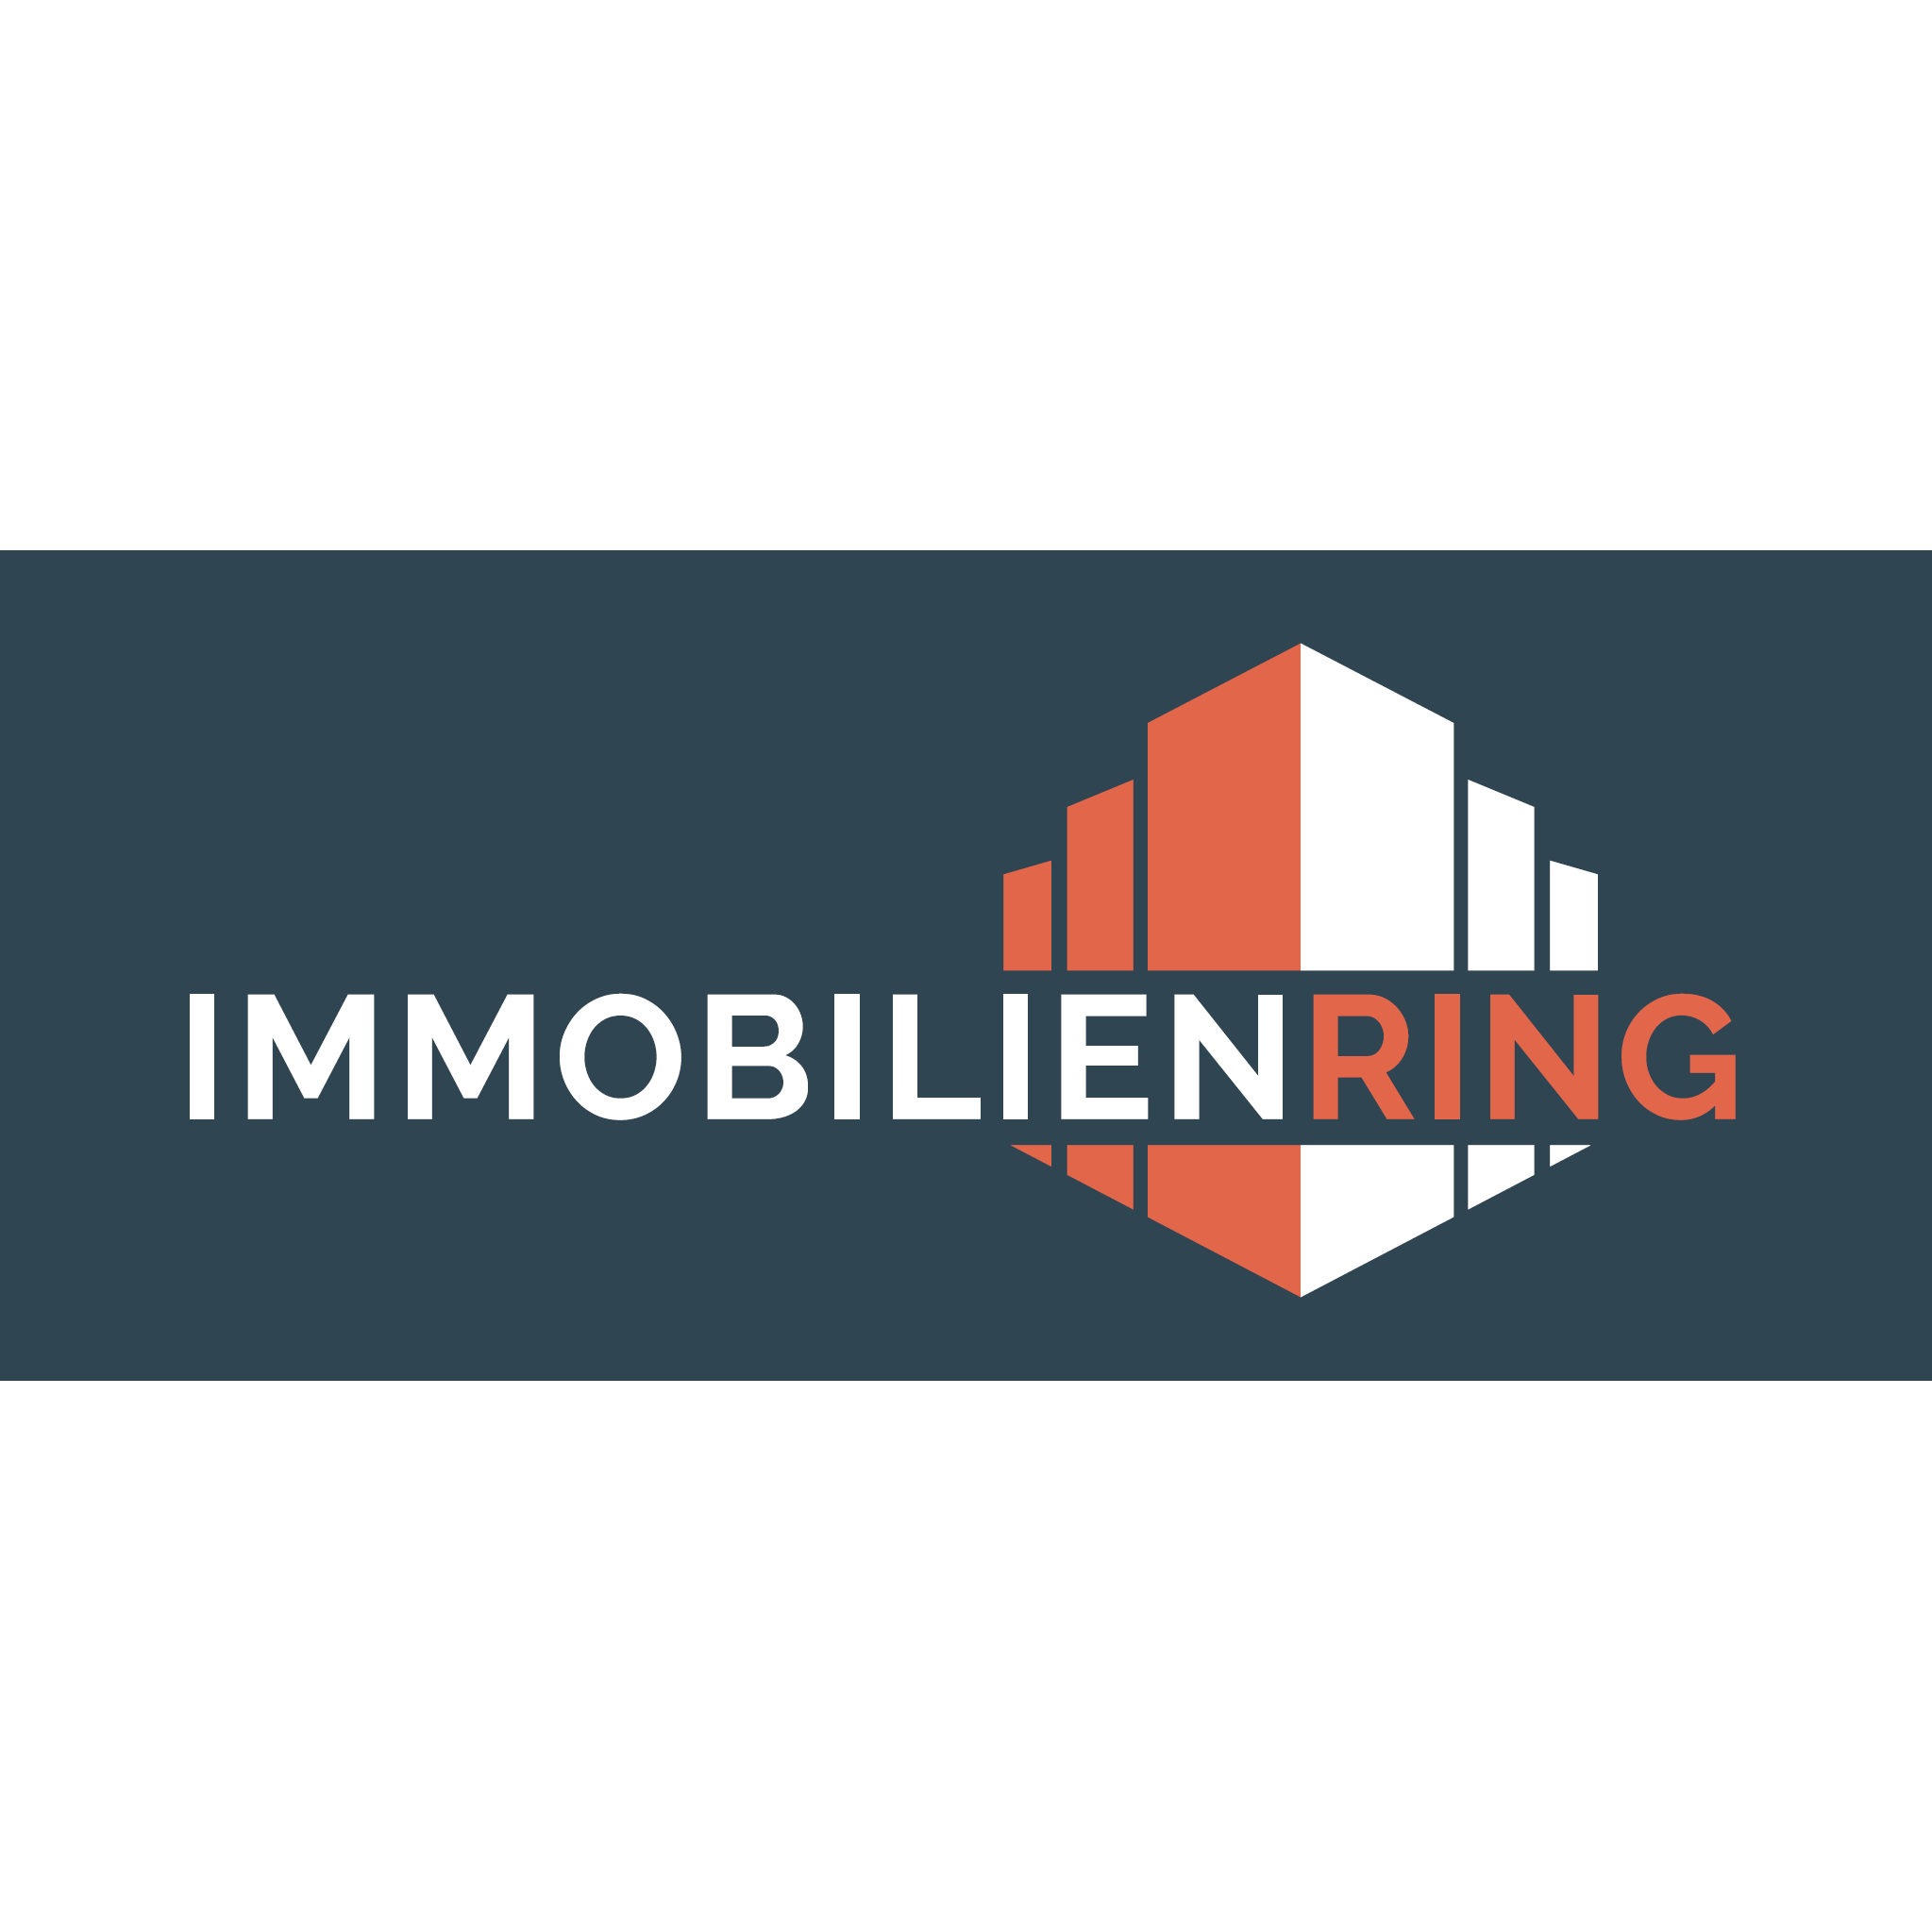 A!B Immobilienring GmbH